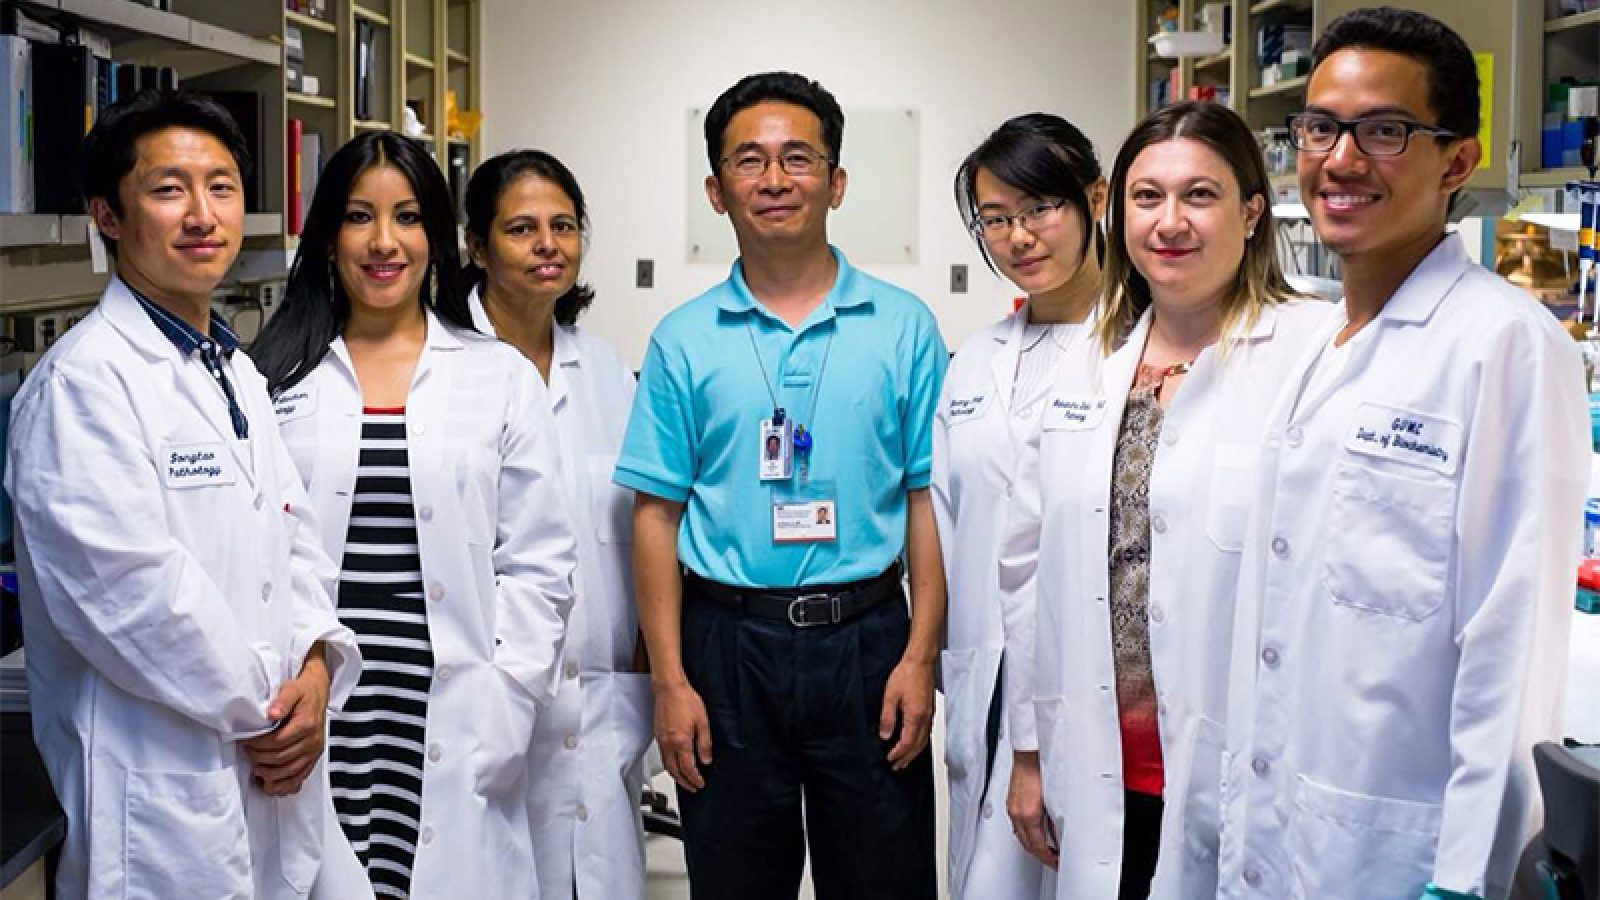 Dr. Xuefeng Liu and his research team stand together in his lab